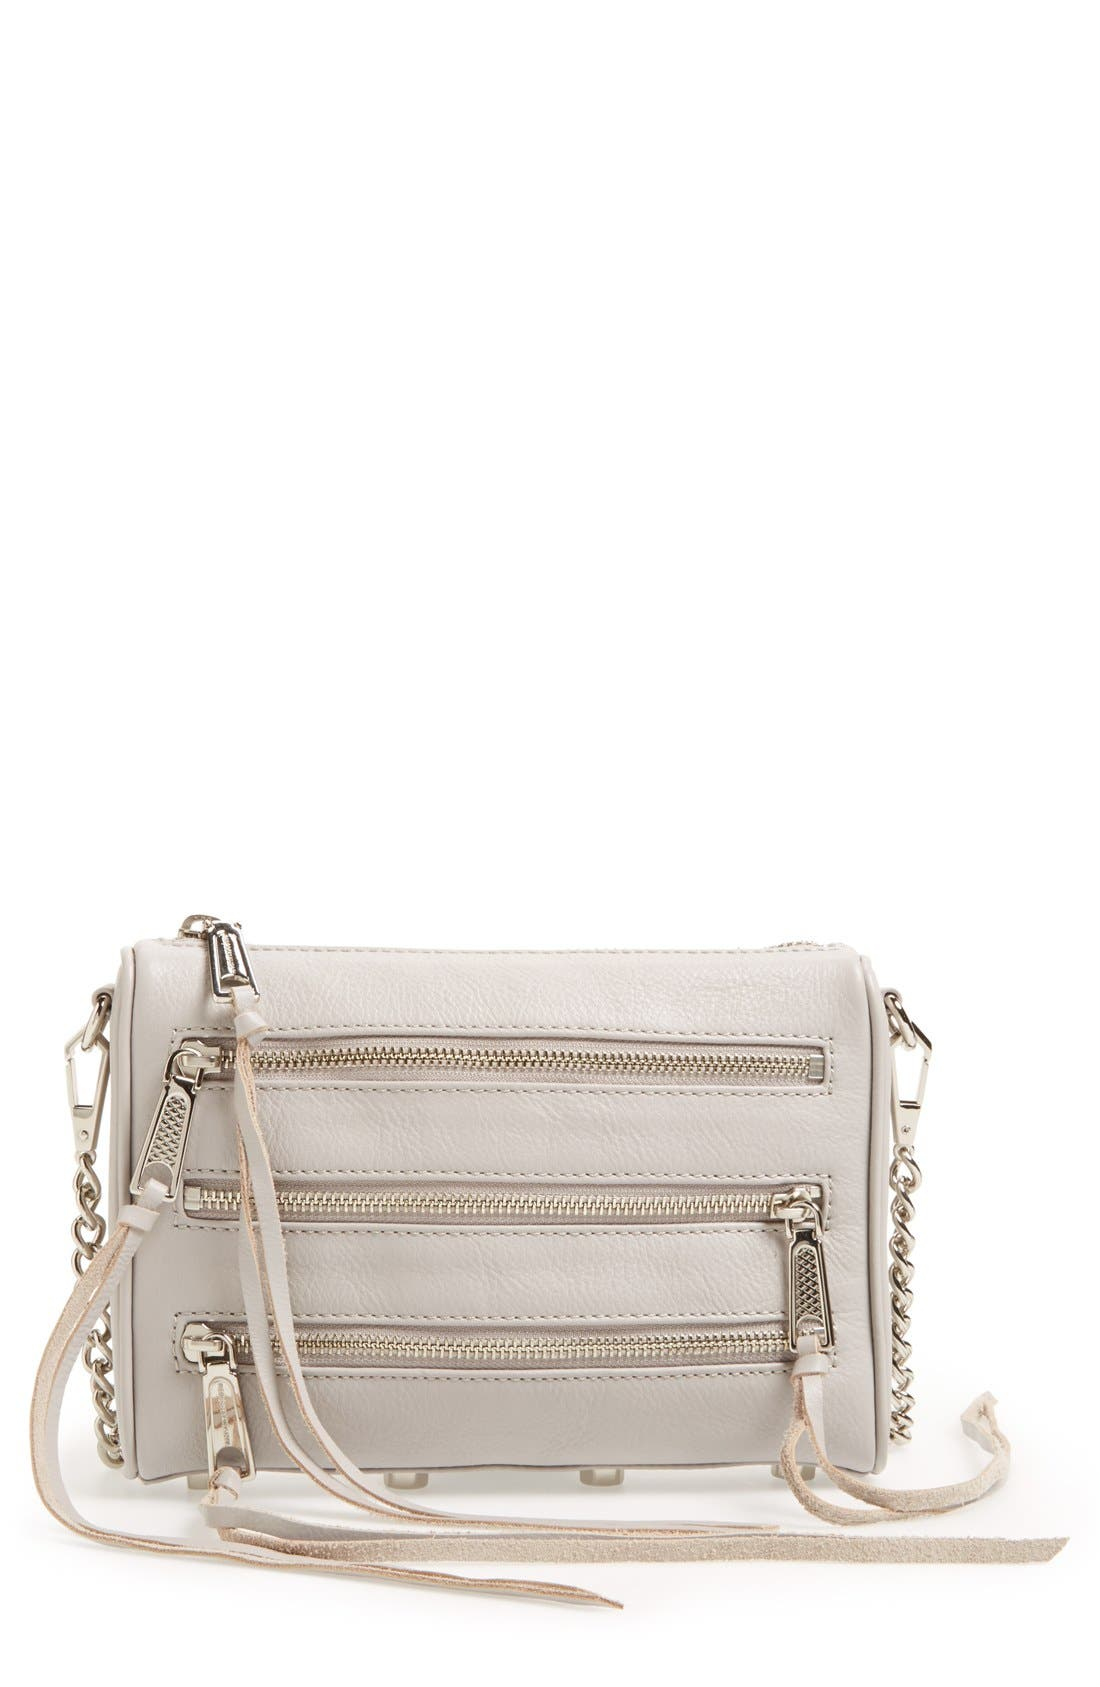 Alternate Image 1 Selected - Rebecca Minkoff Mini 5 Zip Convertible Crossbody Bag